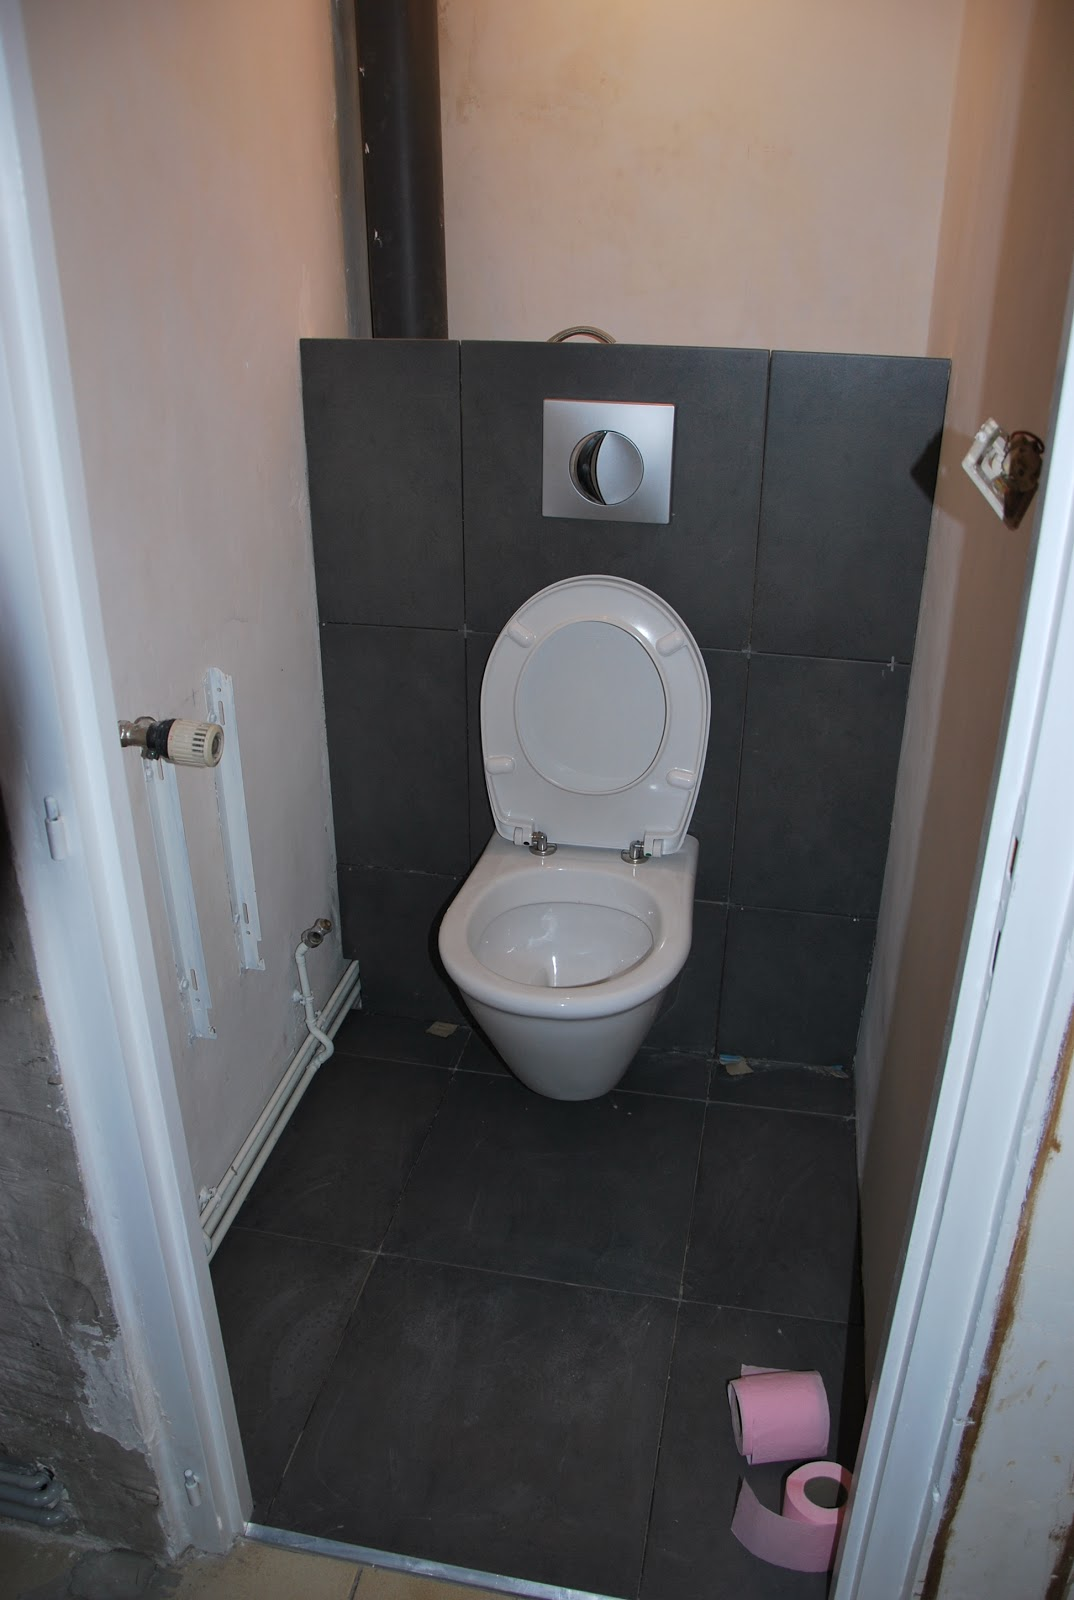 Poser du carrelage wc suspendu for Carrelage pour wc suspendu